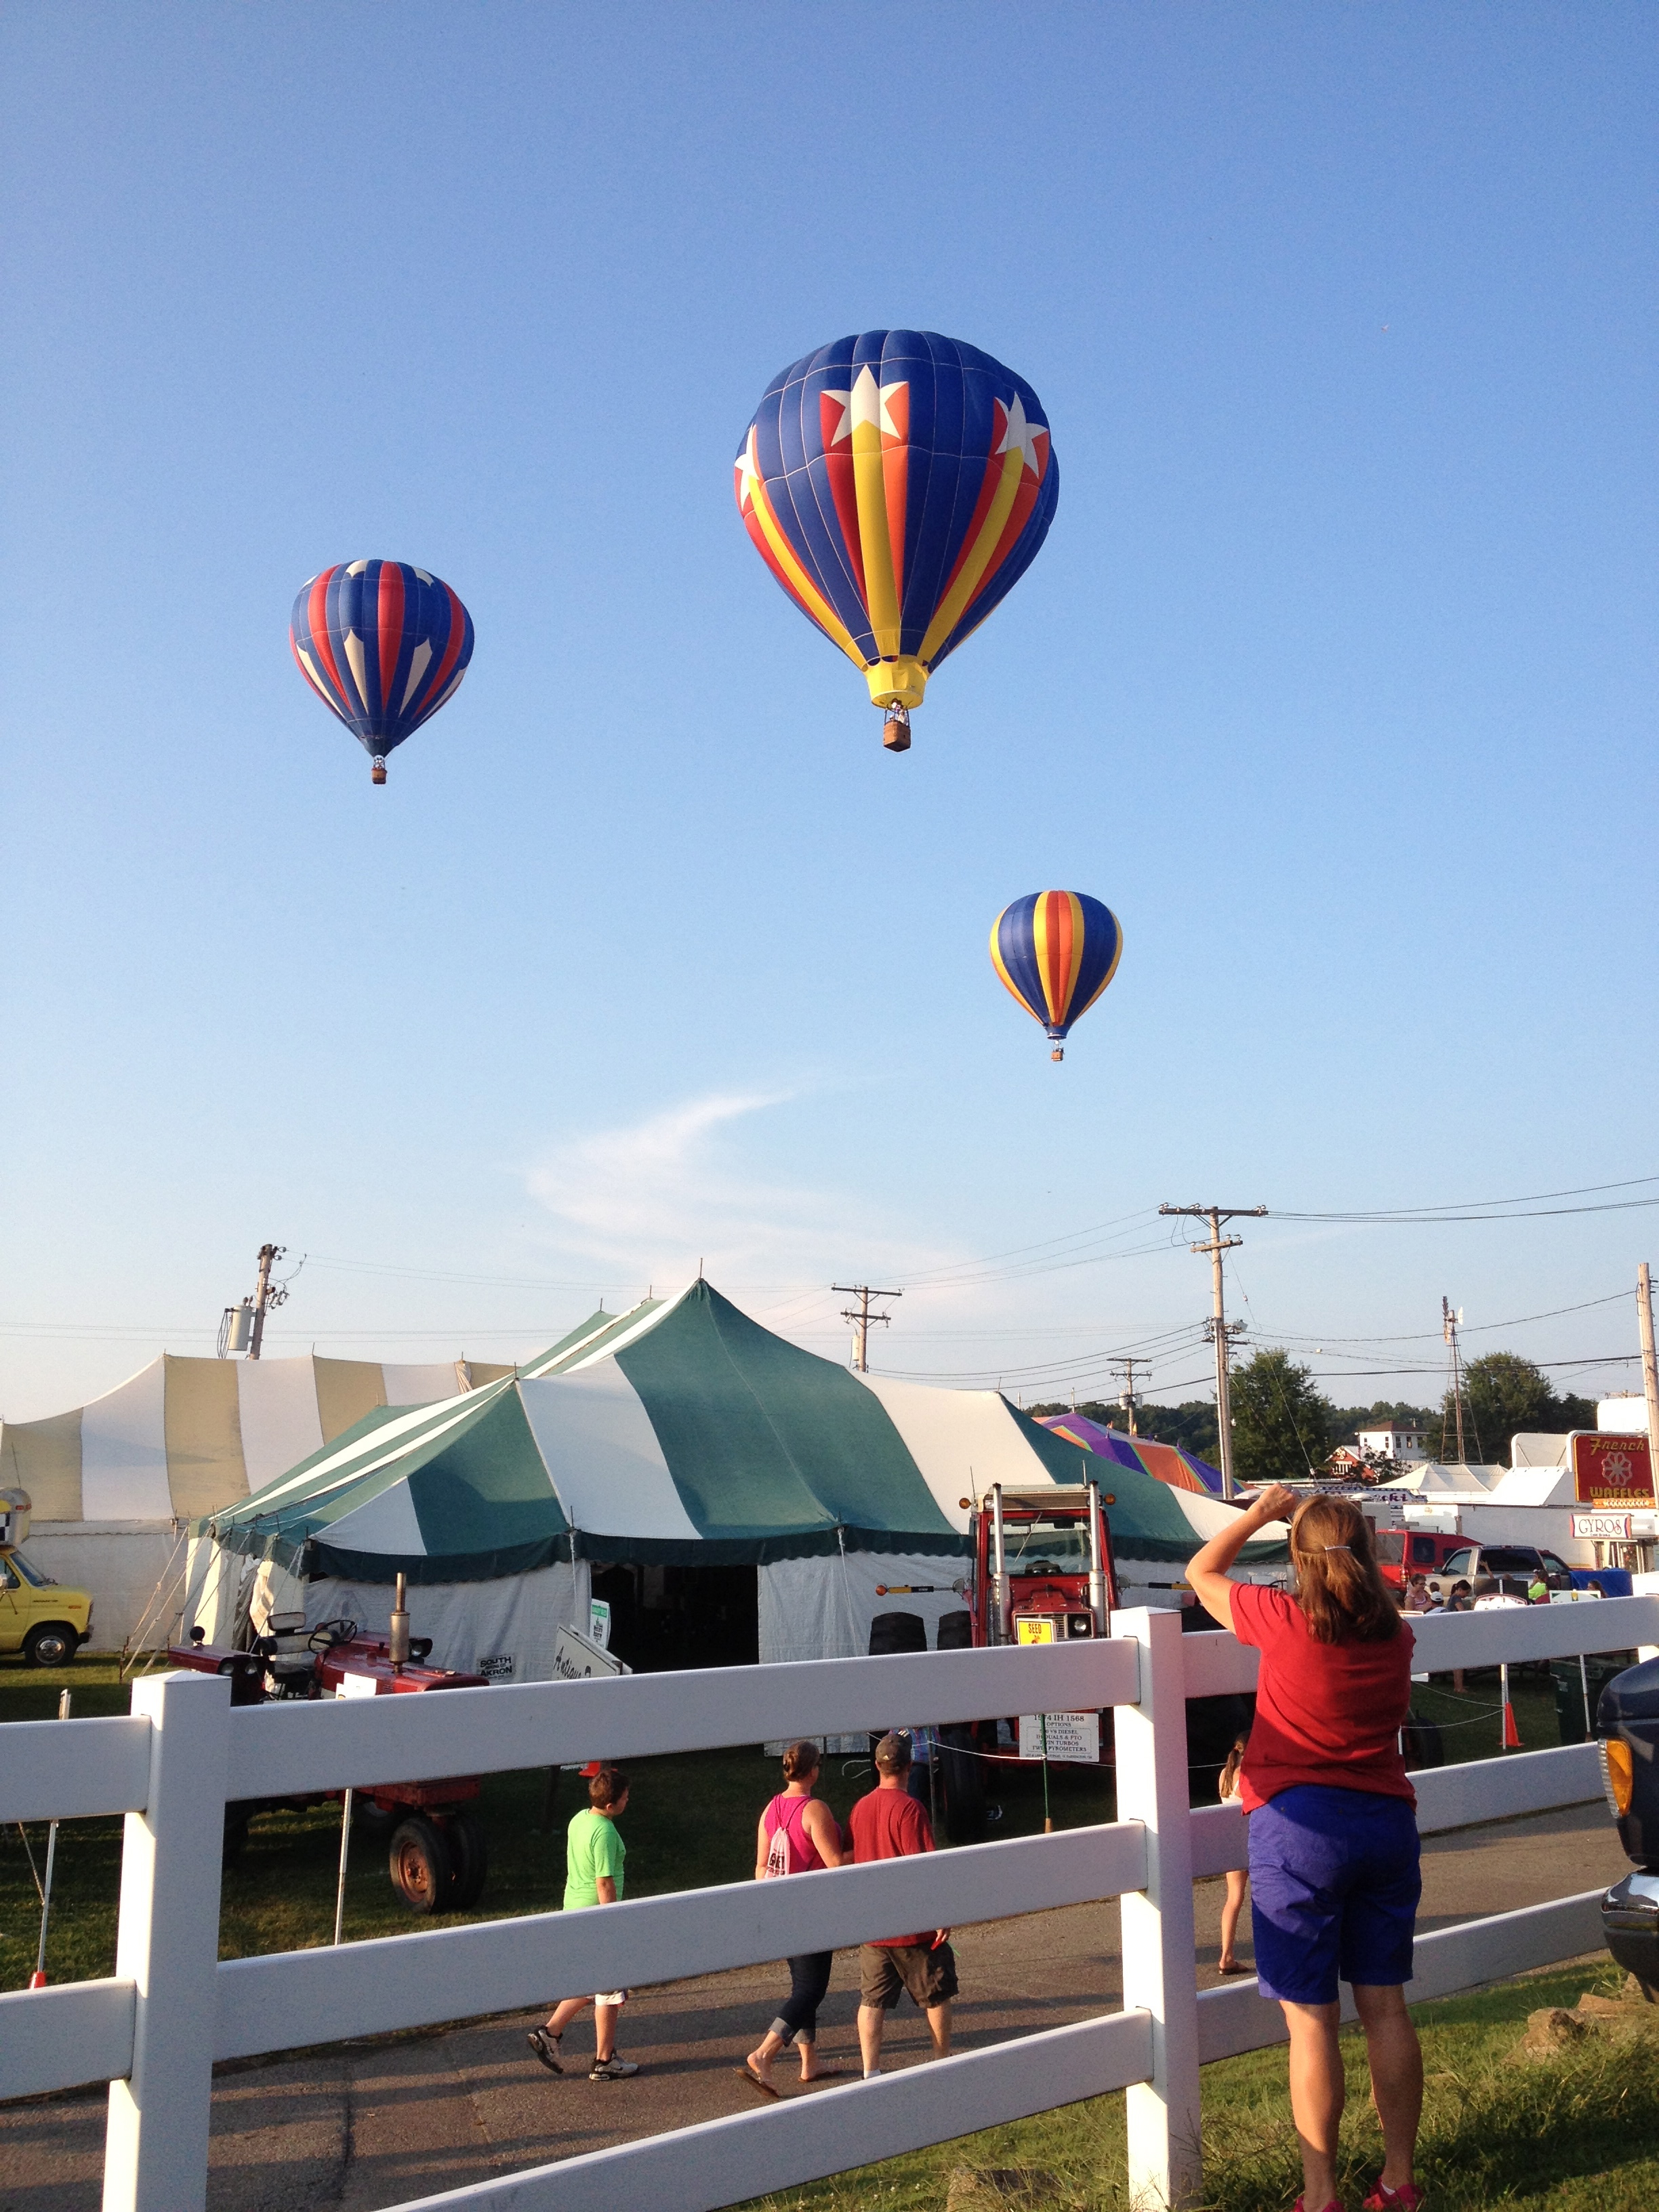 The Great Geauga County Fair is chocked full of activities, entertainment, competitions and displays. It is held every Labor Day Weekend in Northeast Ohio.